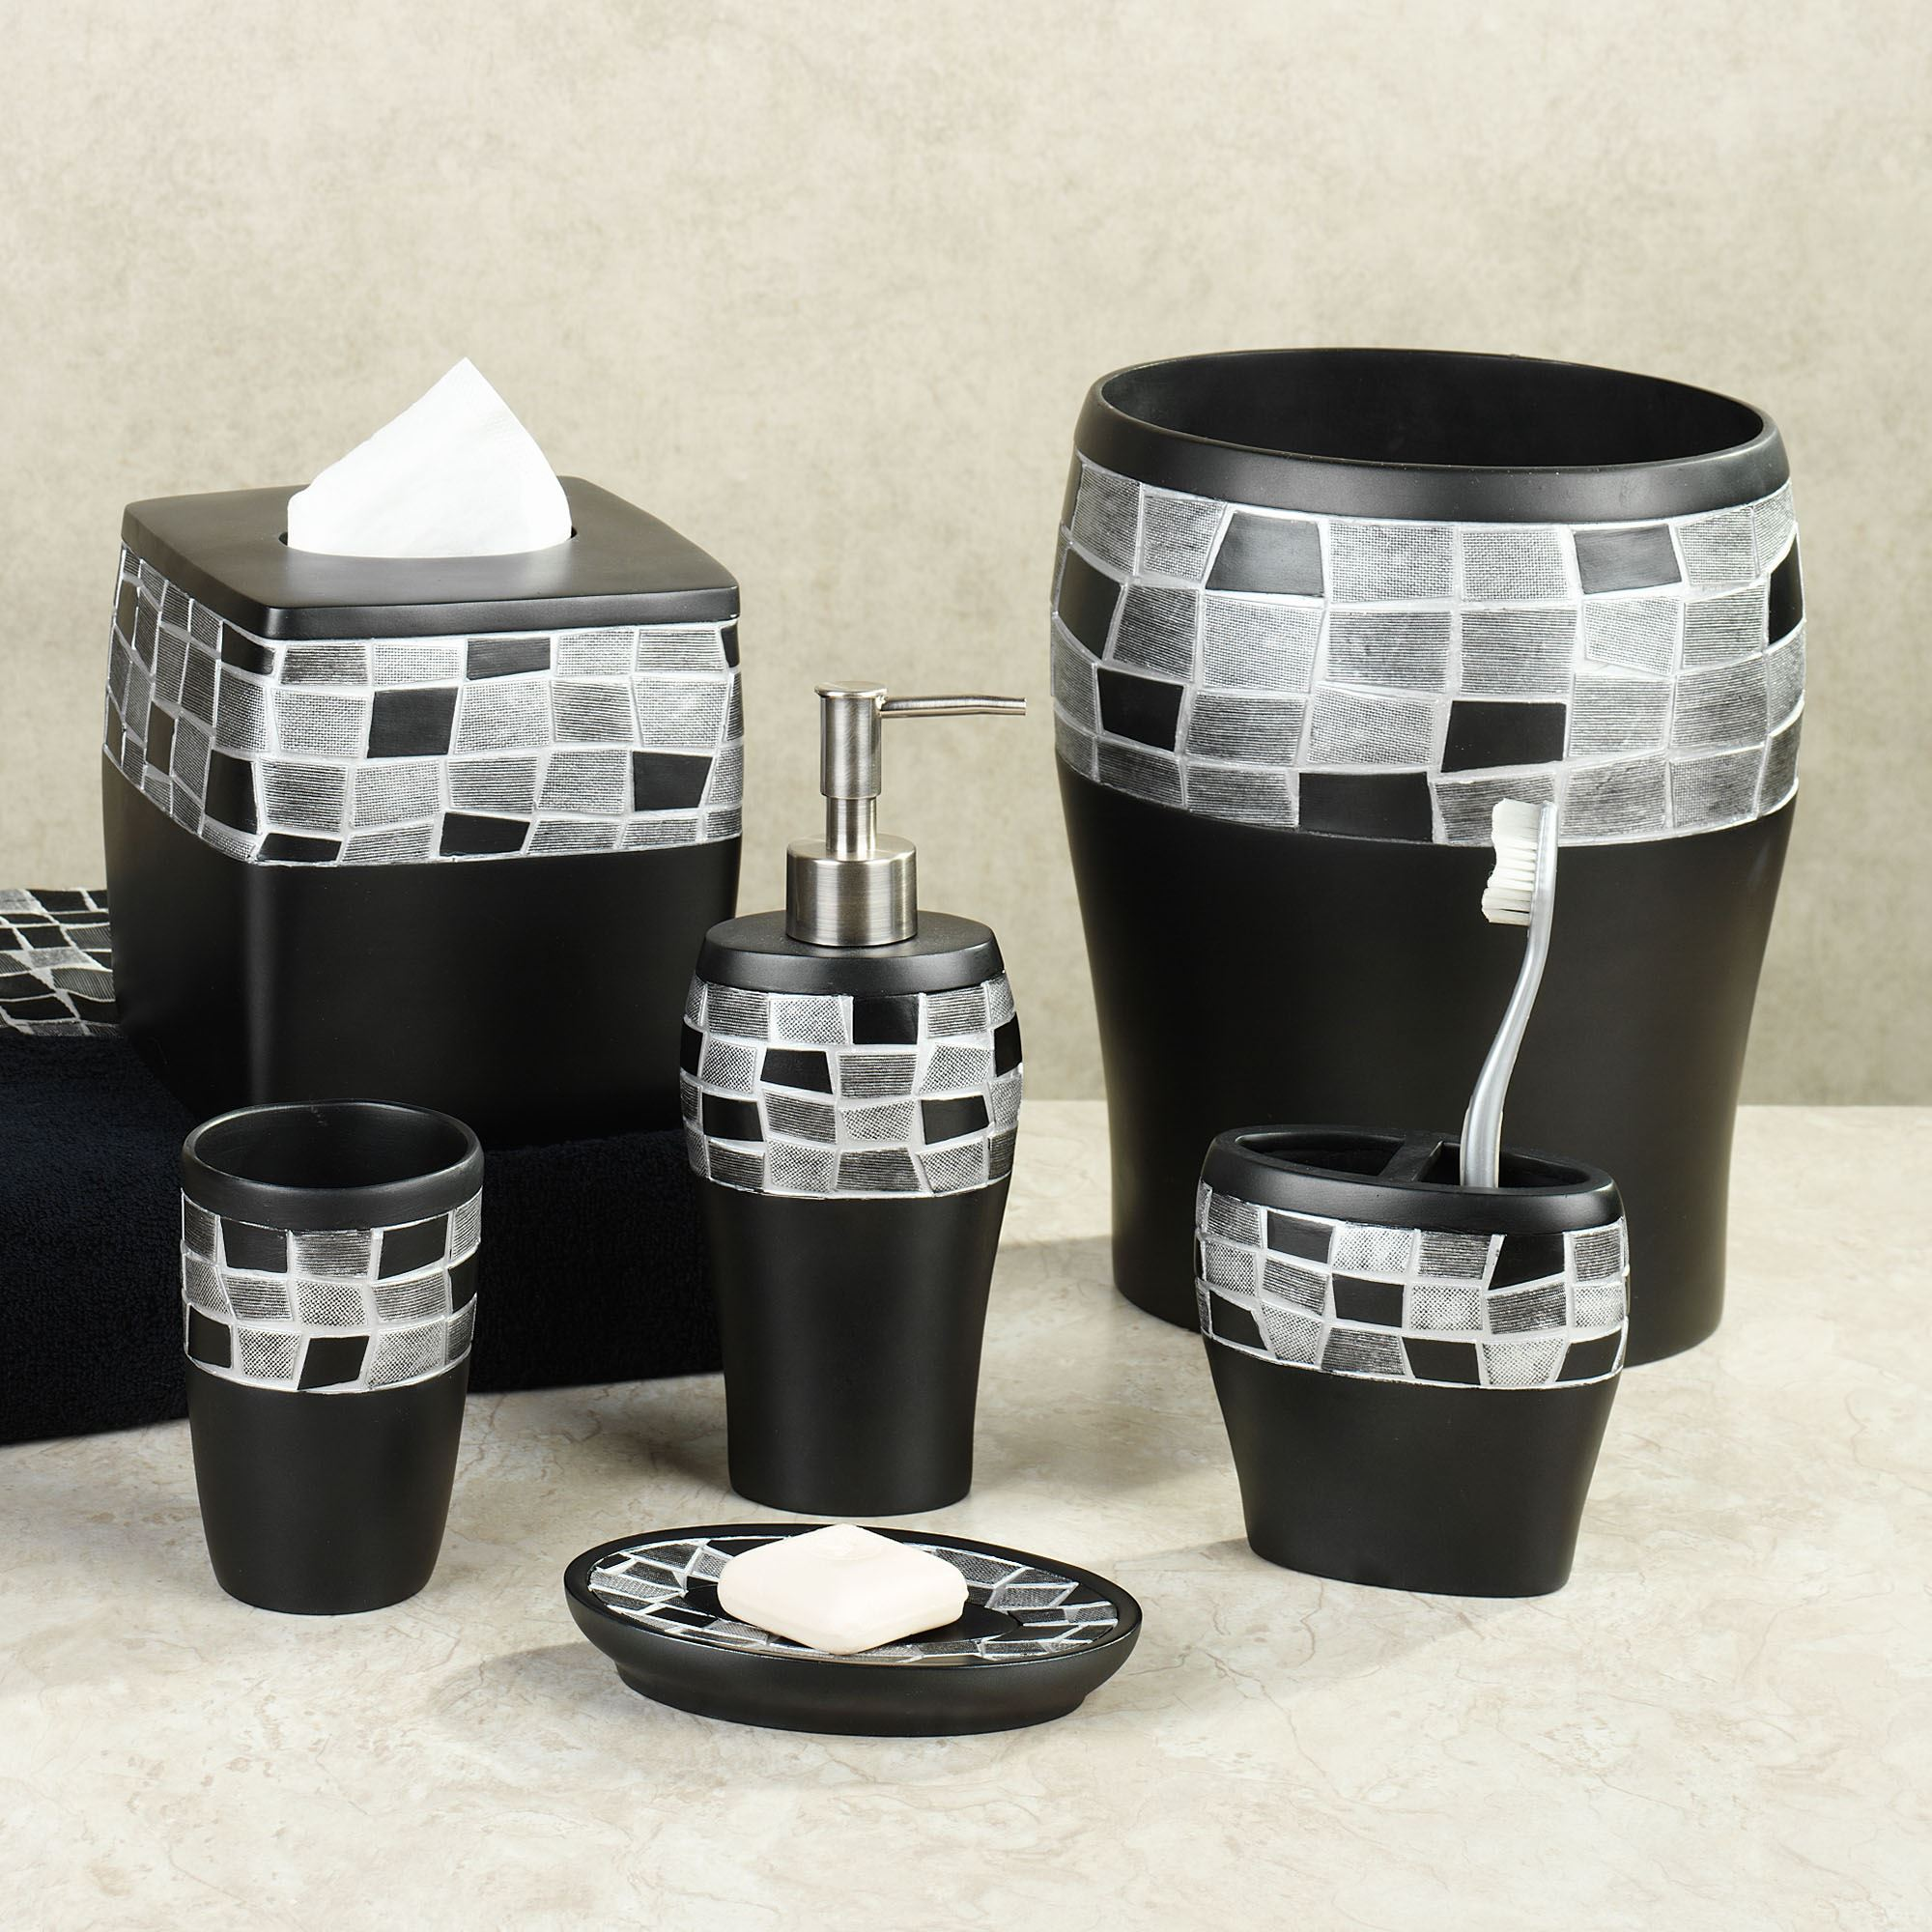 Black mosaic stone resin bath accessories for Red and black bathroom accessories sets